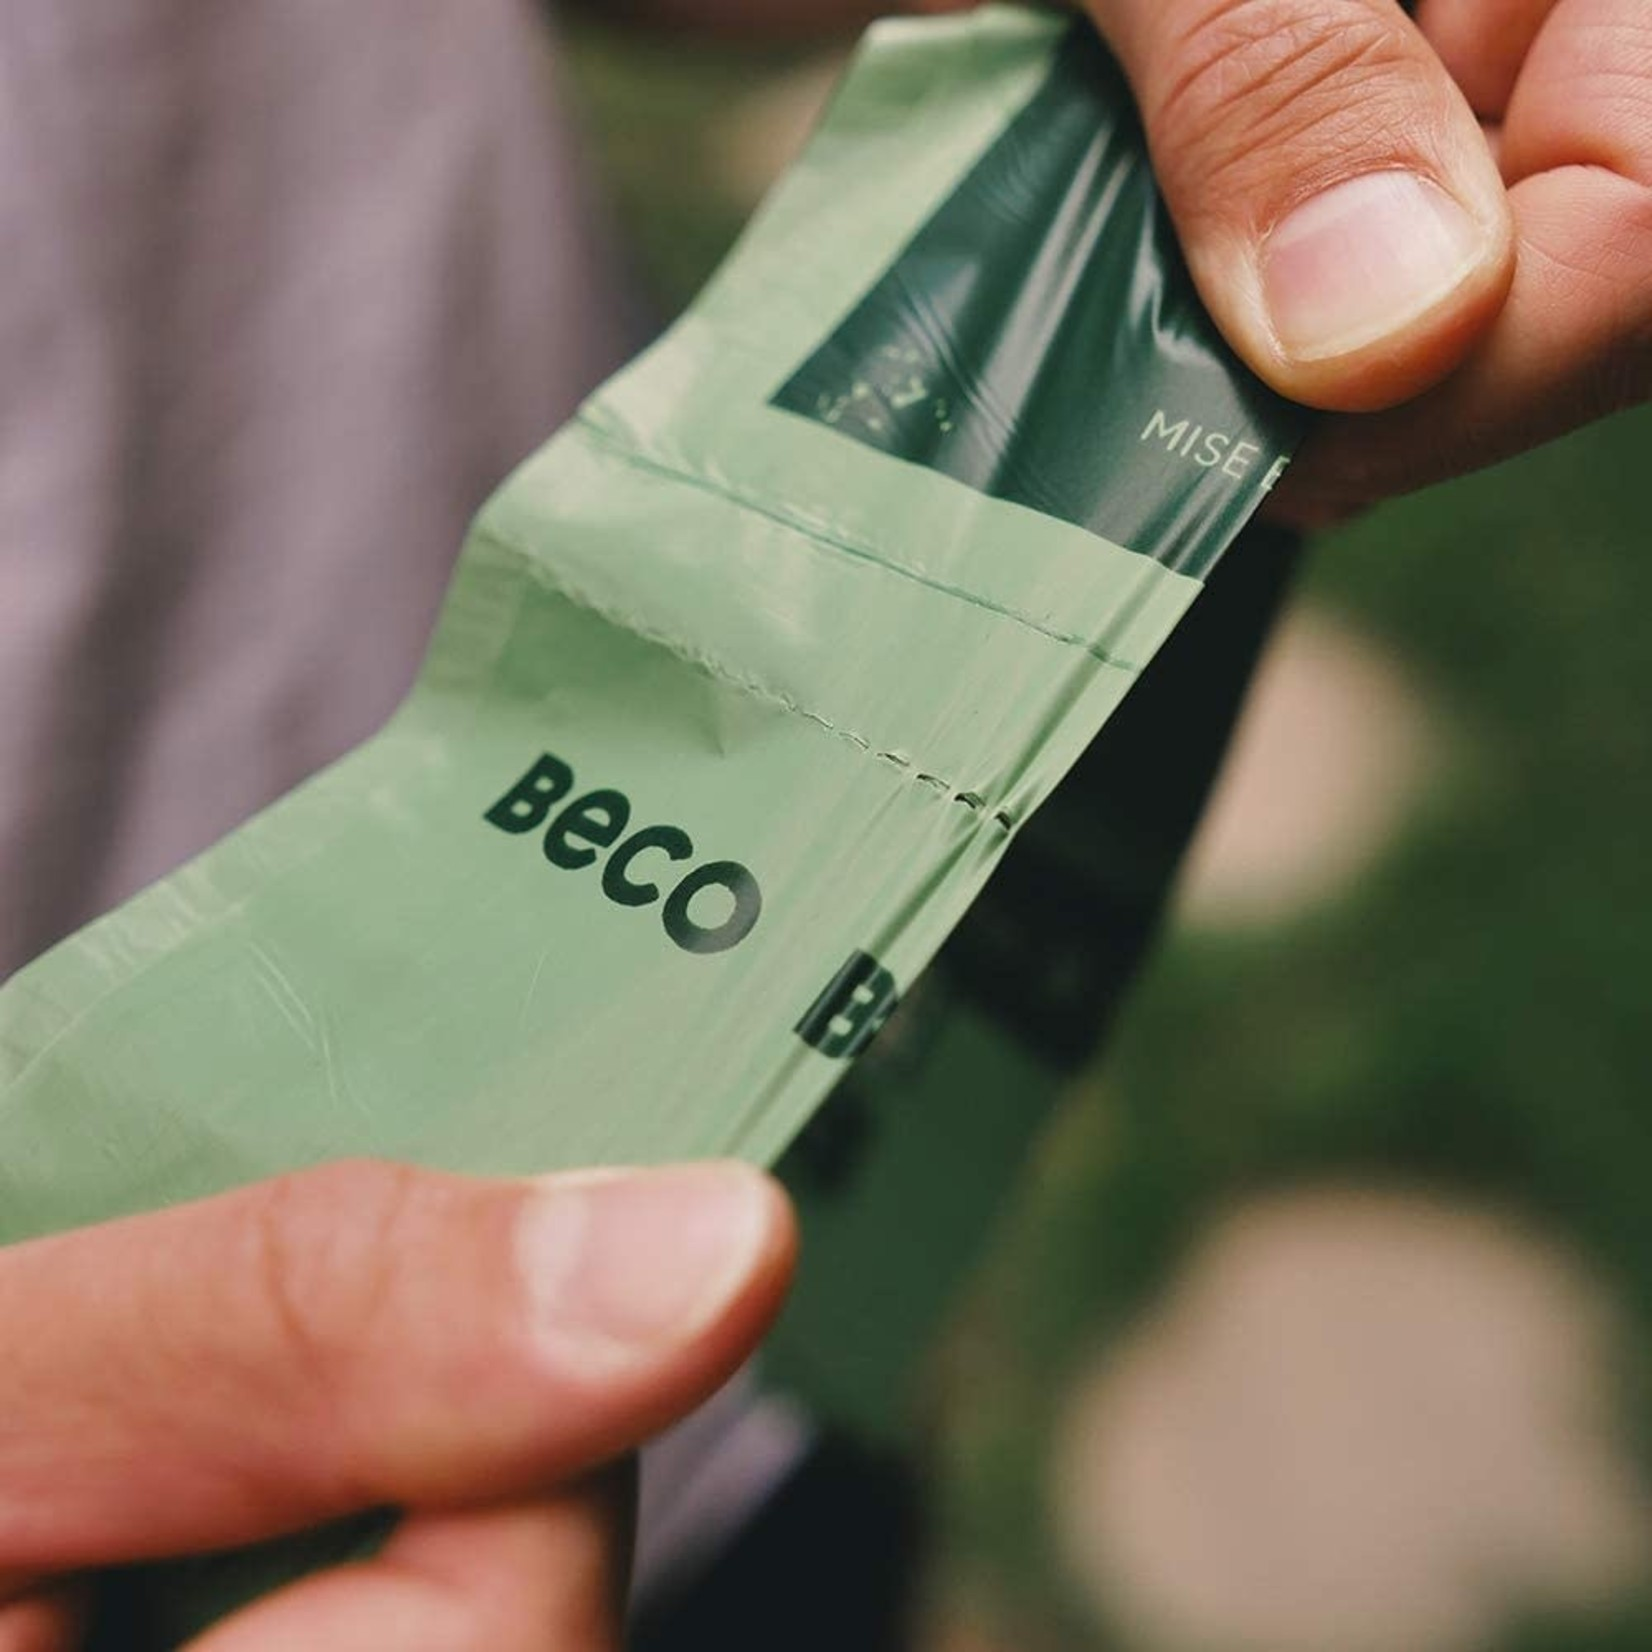 Beco Pets Beco Super Strong Degradable Poop Bags